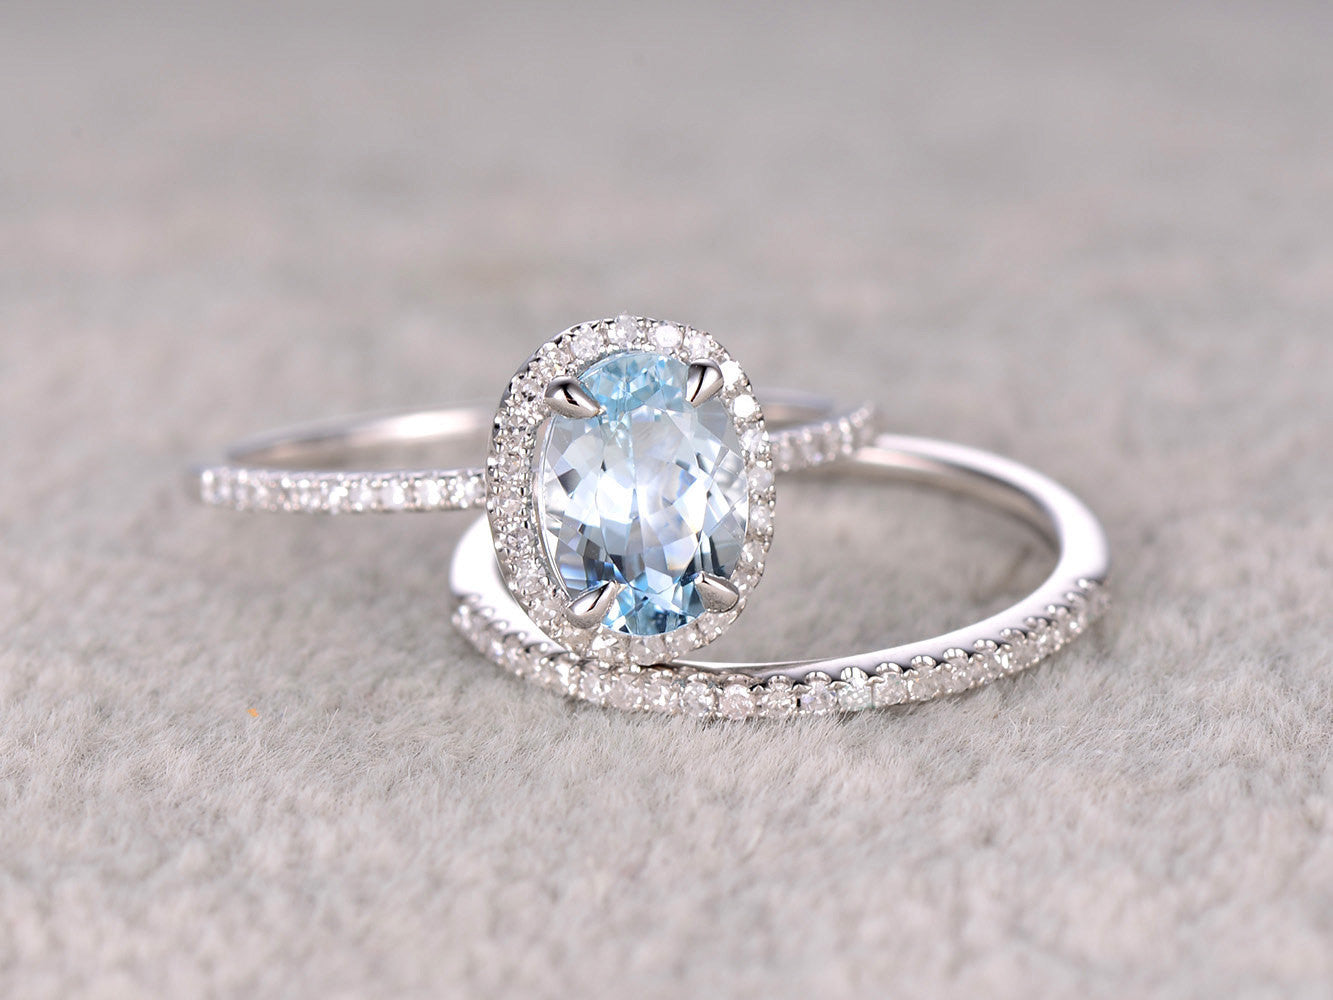 2pcs Oval Blue Aquamarine Wedding ring set.Engagement ring,Diamond wedding band,Solid 14K White Gold,Gemstone Promise Bridal Ring,Stacking